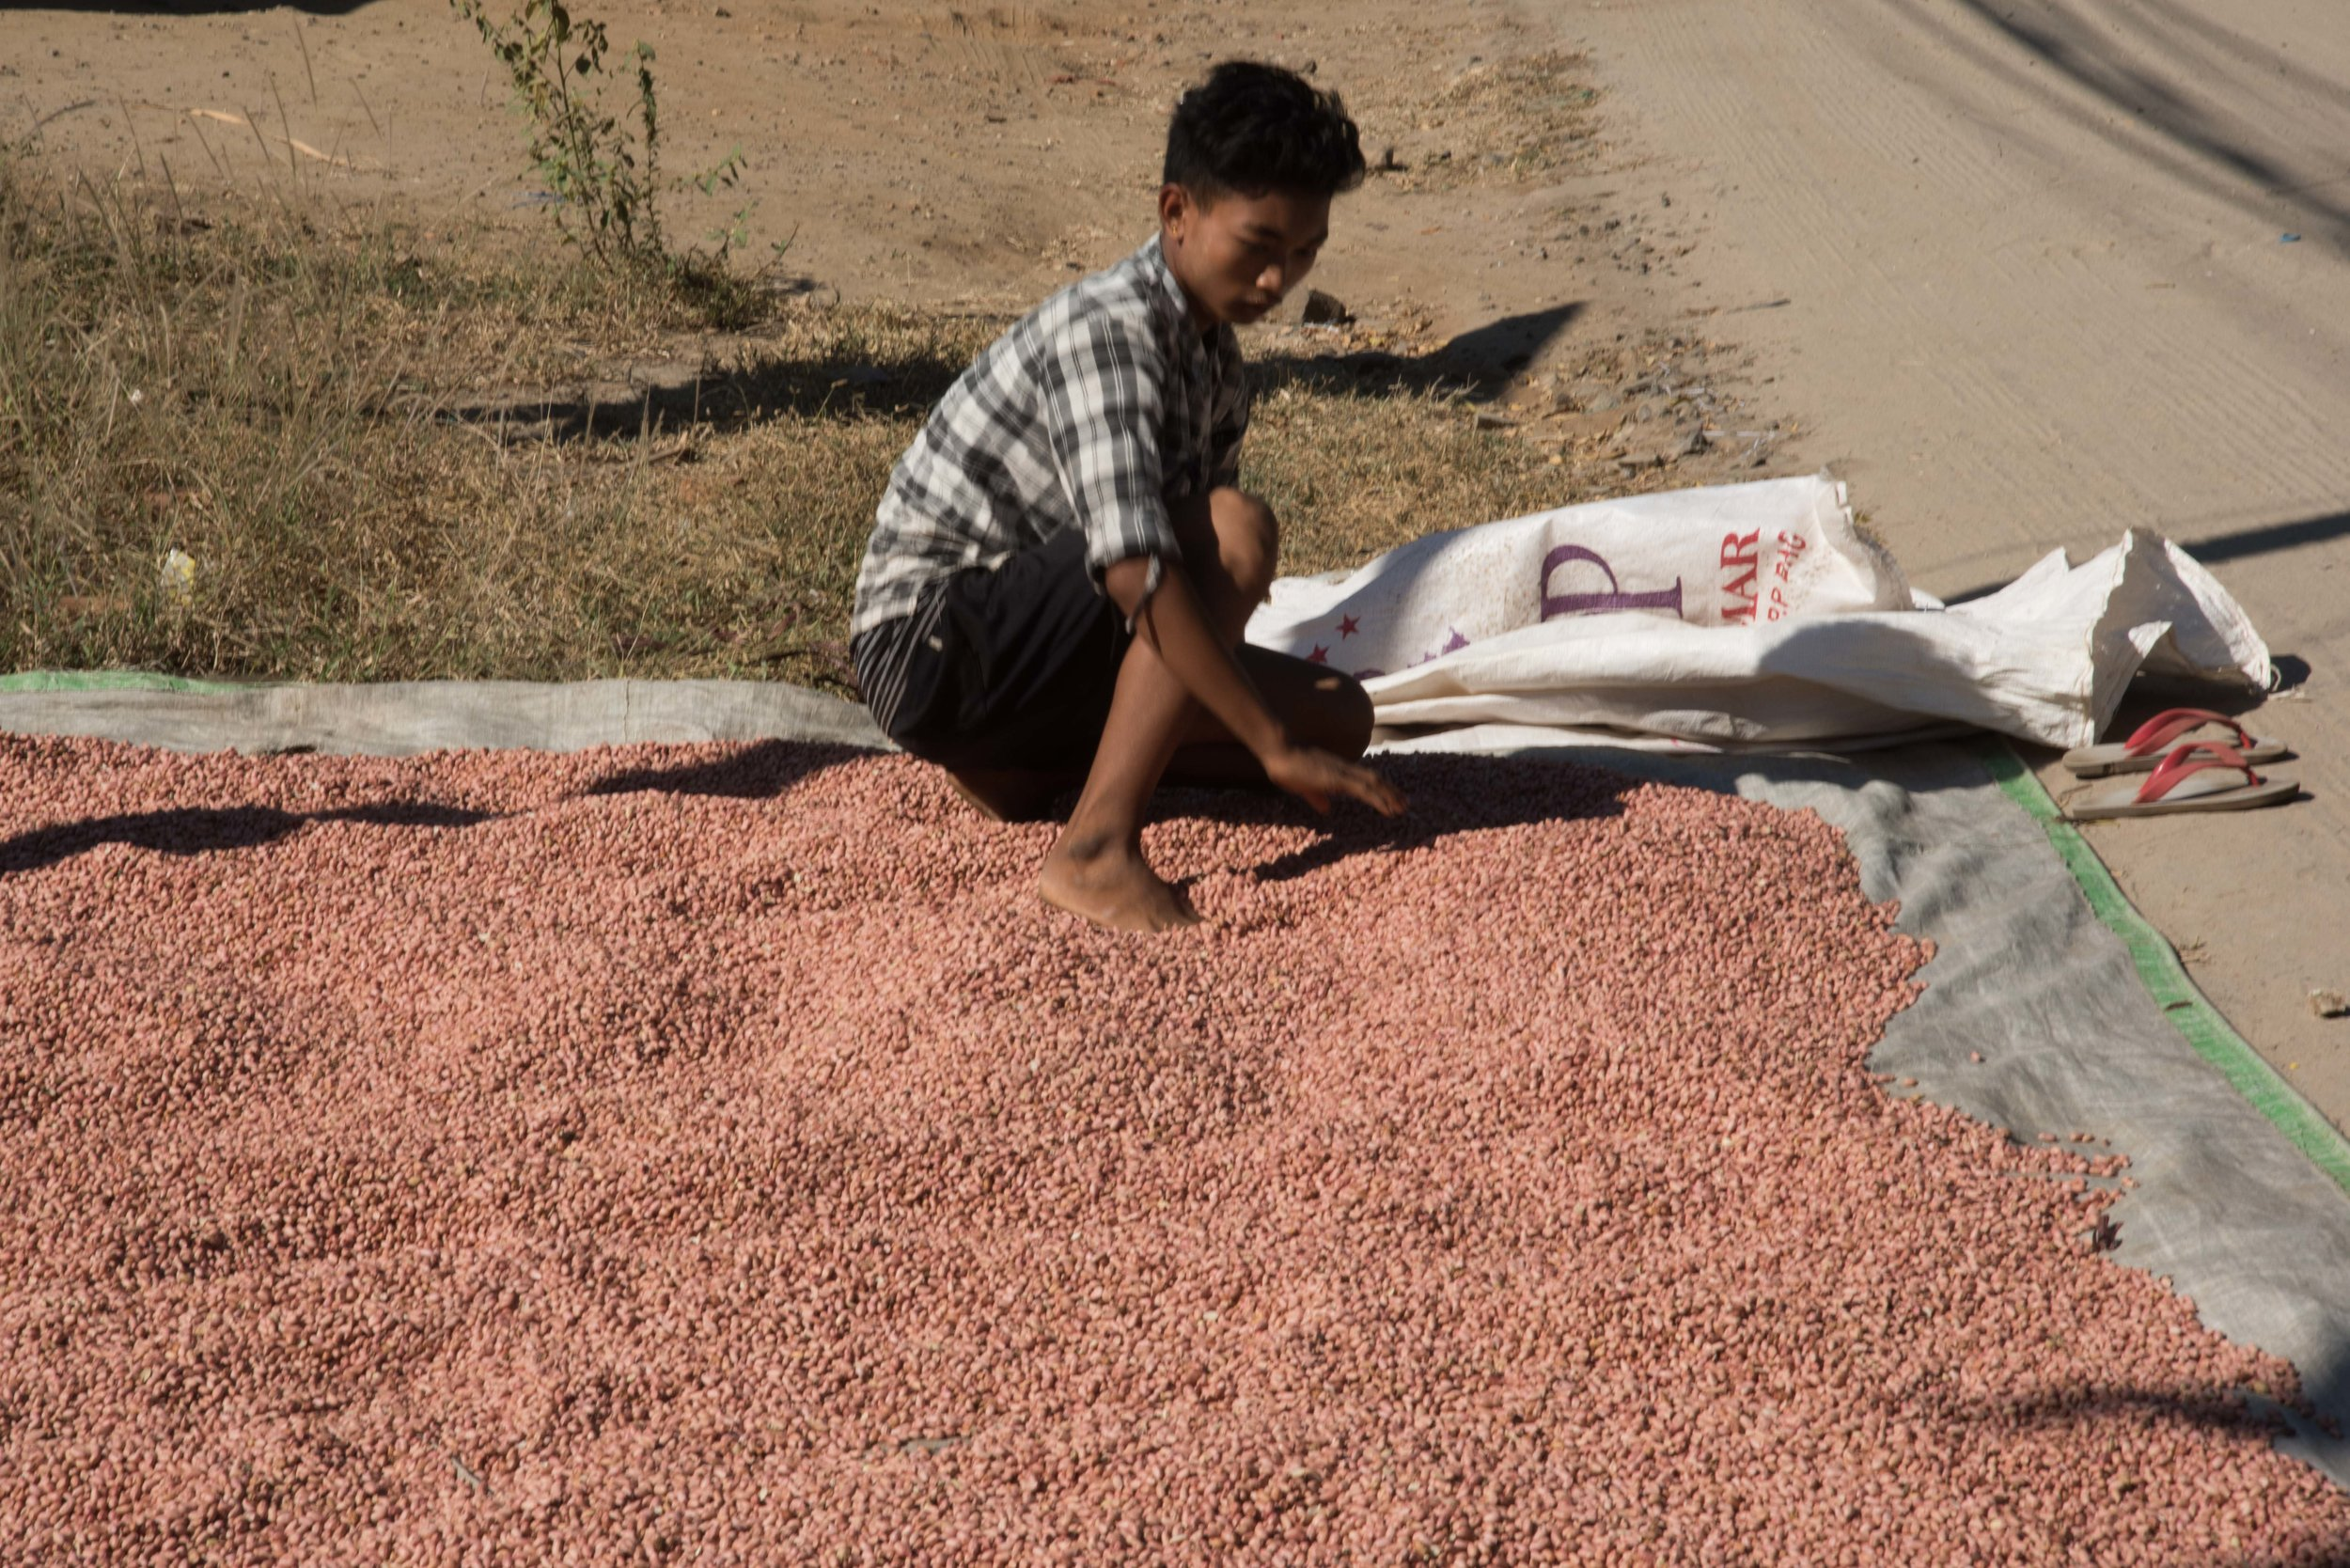 Drying peanuts on the side of the road, Bagan, Myanmar, 20 Nov 2017.jpg